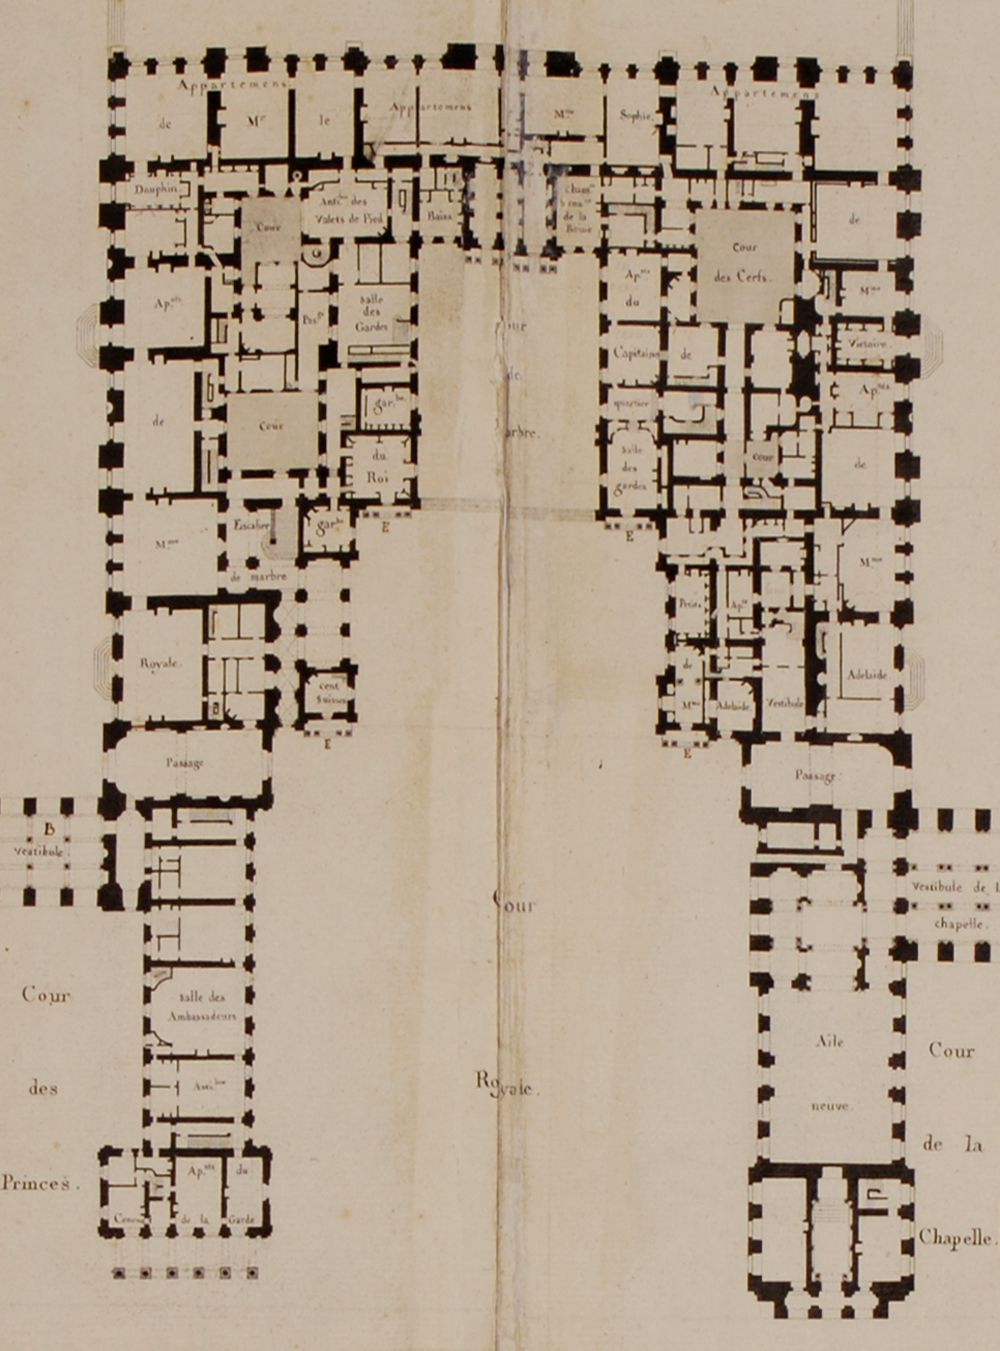 plan 1 hampton court palace ground floor british history online 24 ground floor plan chateau de versailles it shows the pre revolutionary layout before the huge reforms undergone under louis philippe i in